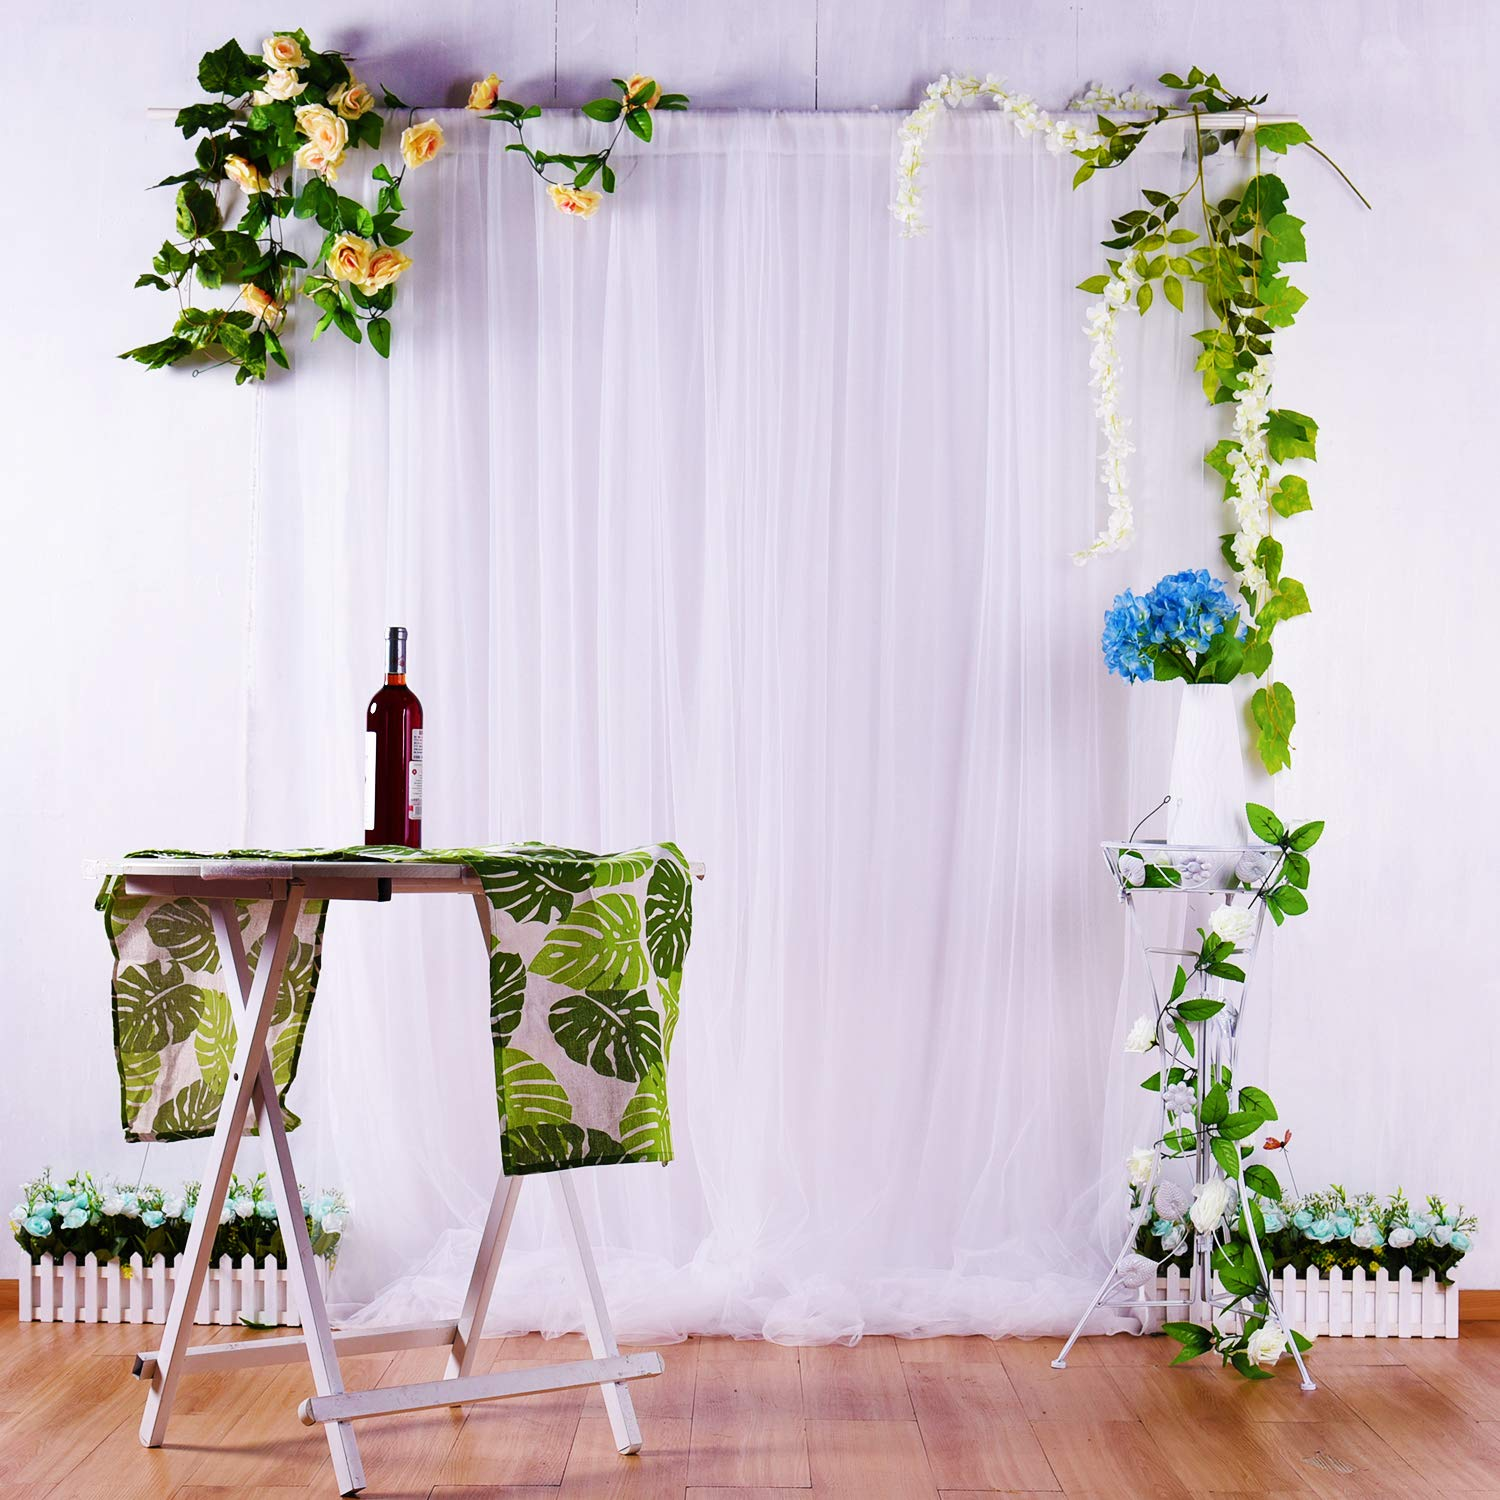 White Tulle Backdrop Curtains for Parties Weddings Baby Shower Birthday Photography Engagement 5ft x 7ft Drape Backdrop Photo Booth Backdrop